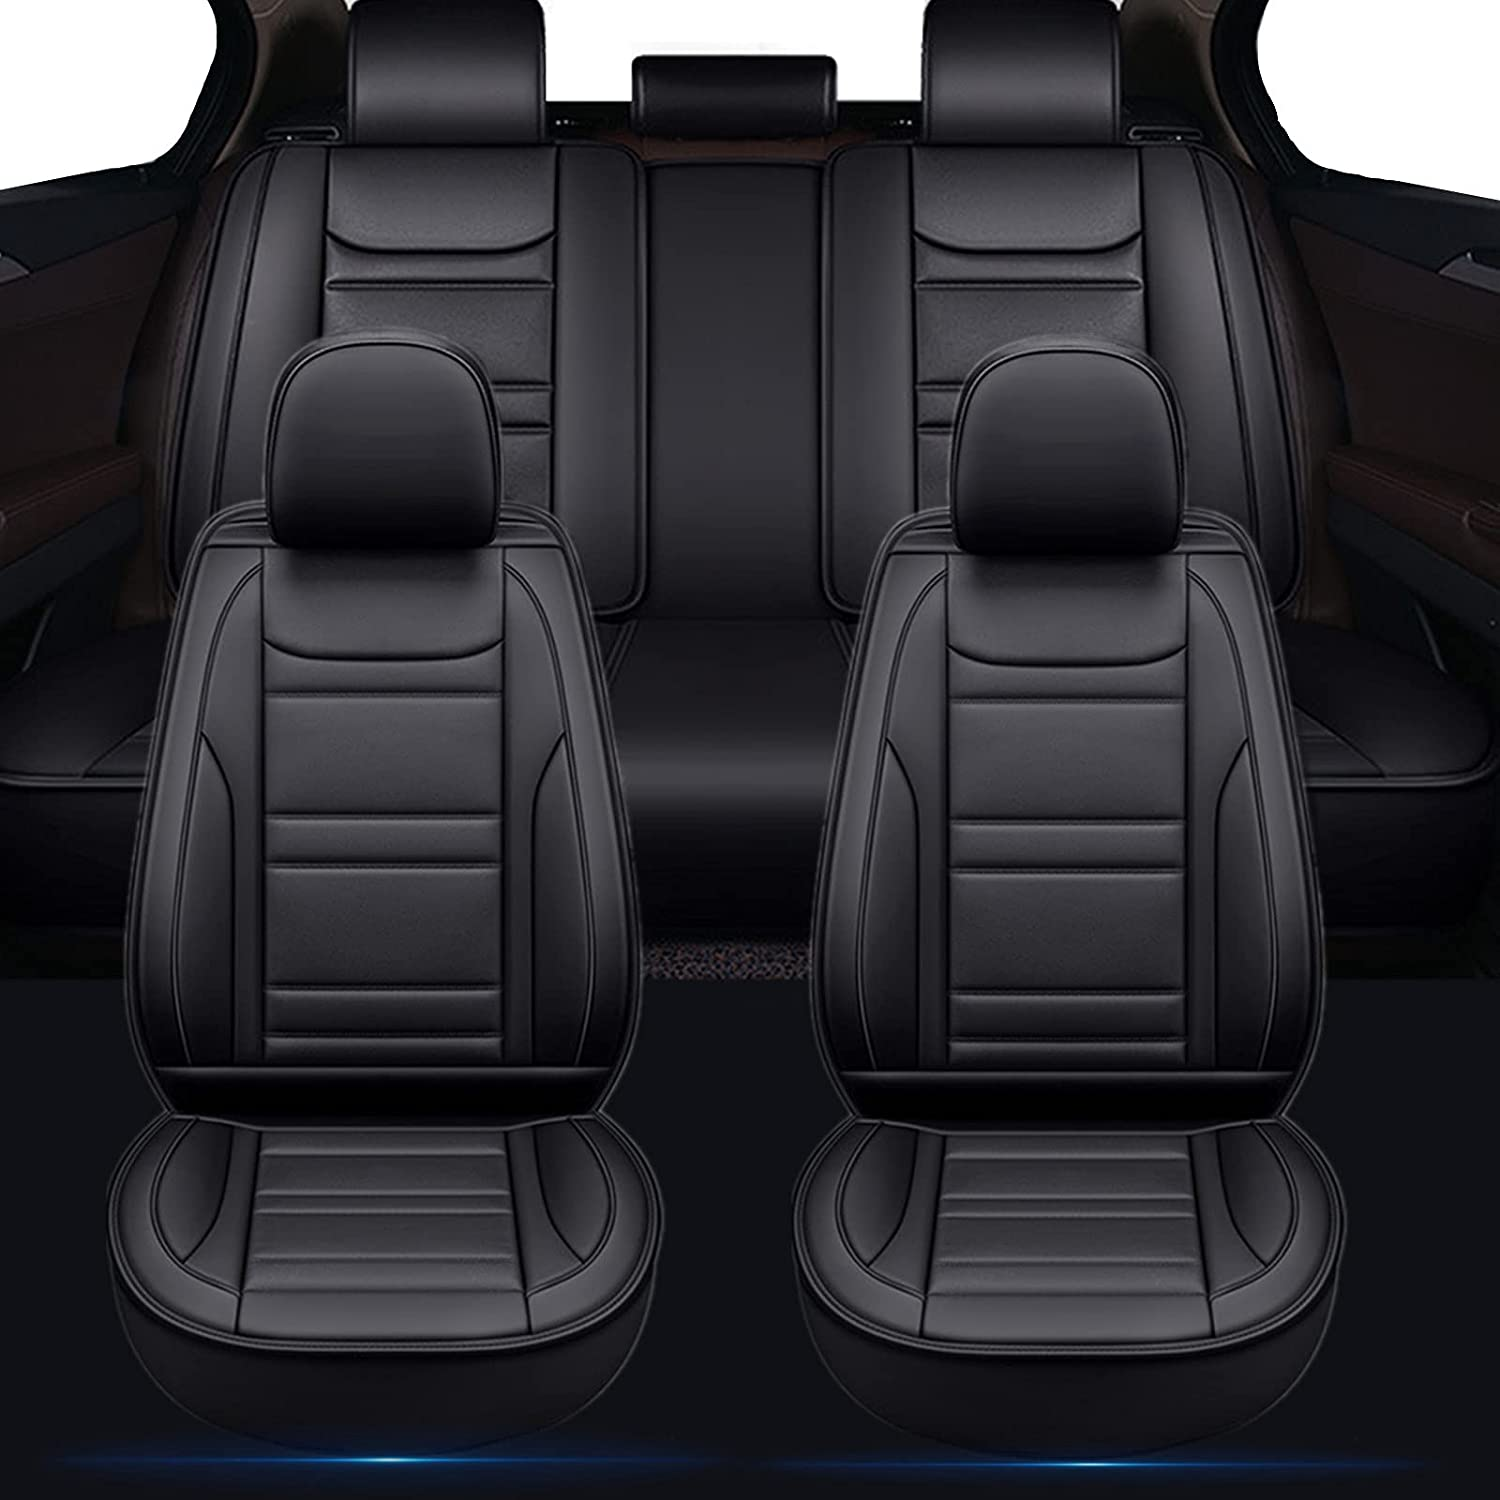 MOFANS Many popular brands Full Set Max 60% OFF Car Seat Cover Covers Leather Airba Premium